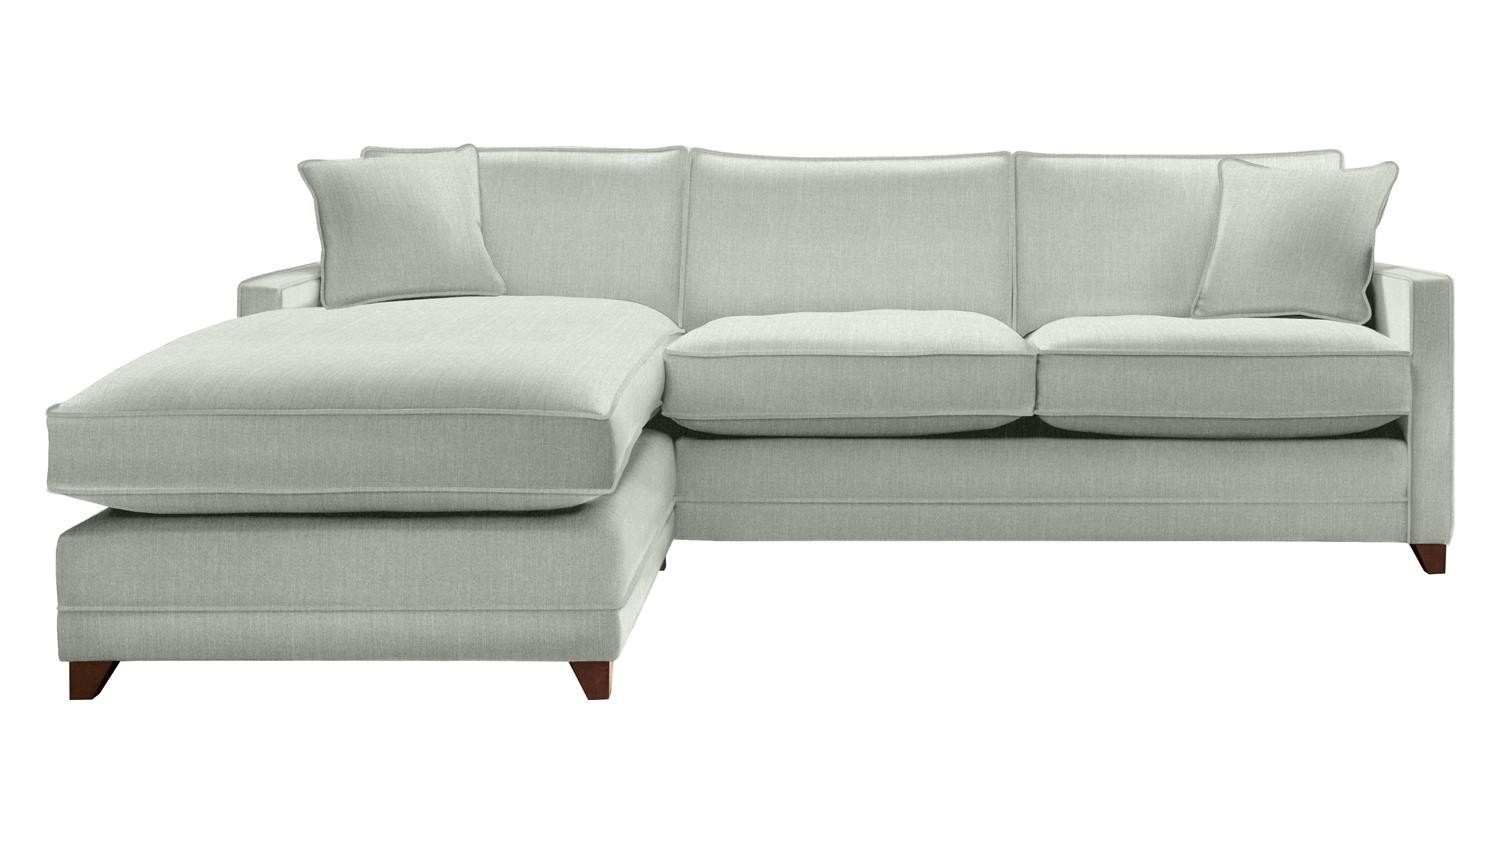 The Aldbourne 4 Seater Chaise Sofa Bed